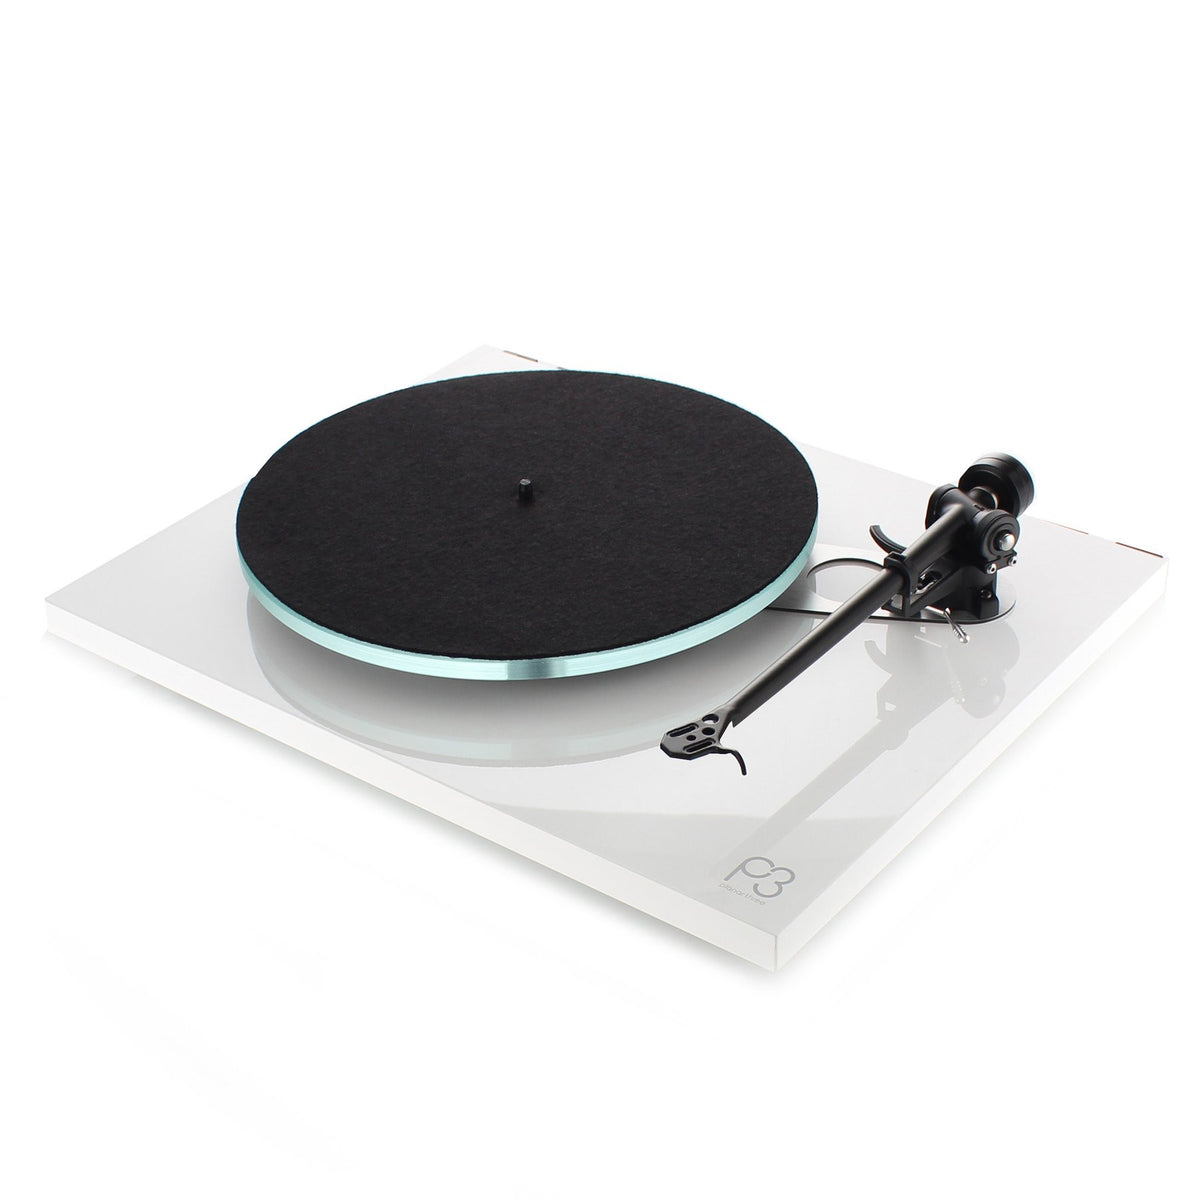 Rega: Planar 3 / Ortofon 2M Blue / Turntable Kit (TTL Custom)